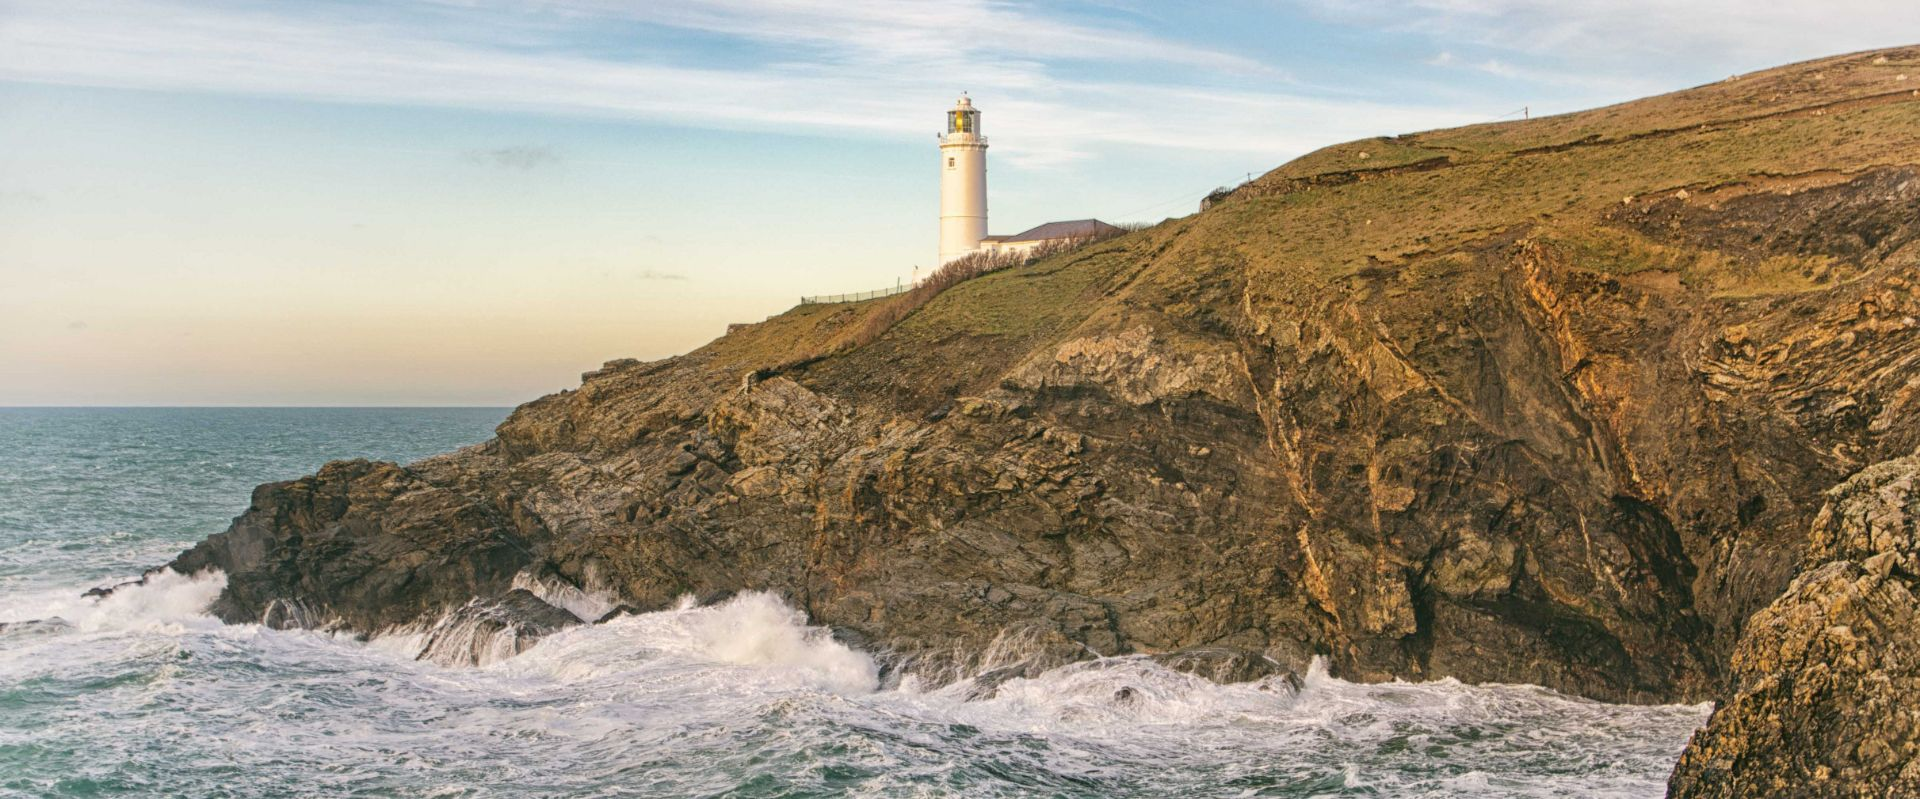 Trevose Head in Cornwall